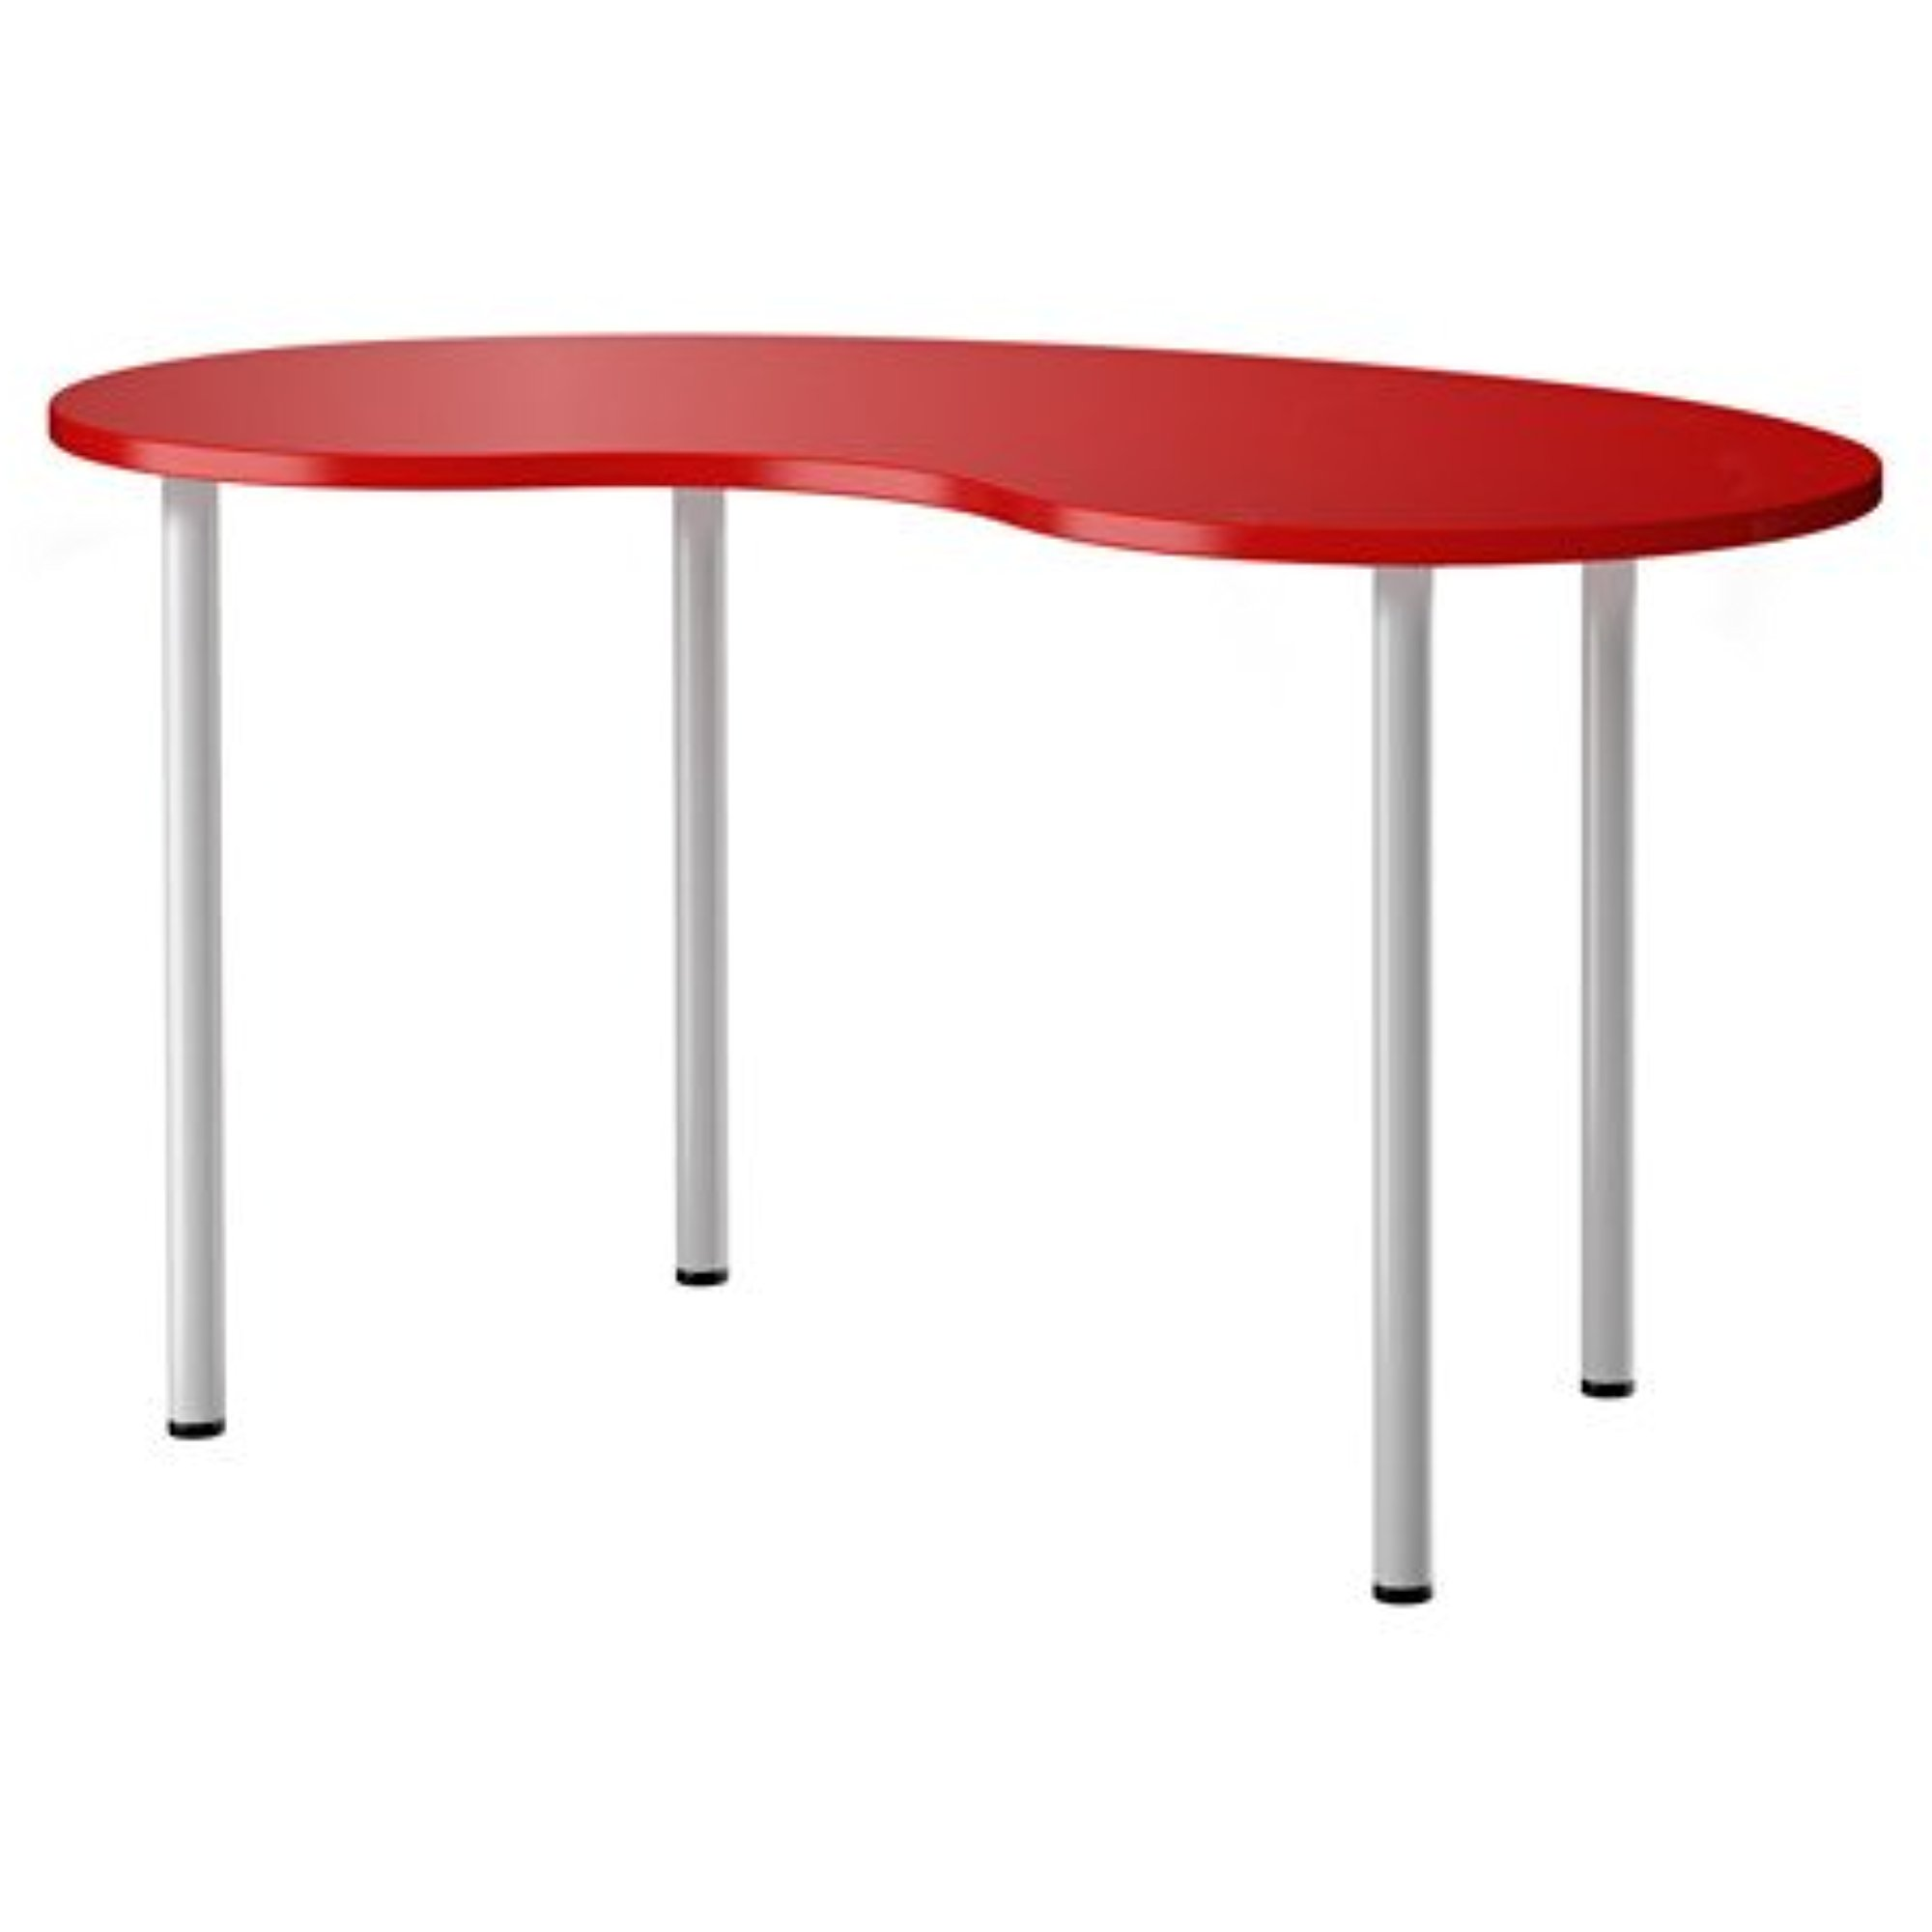 Ikea Computer Table, cashew shape red, silver color 55 1/...